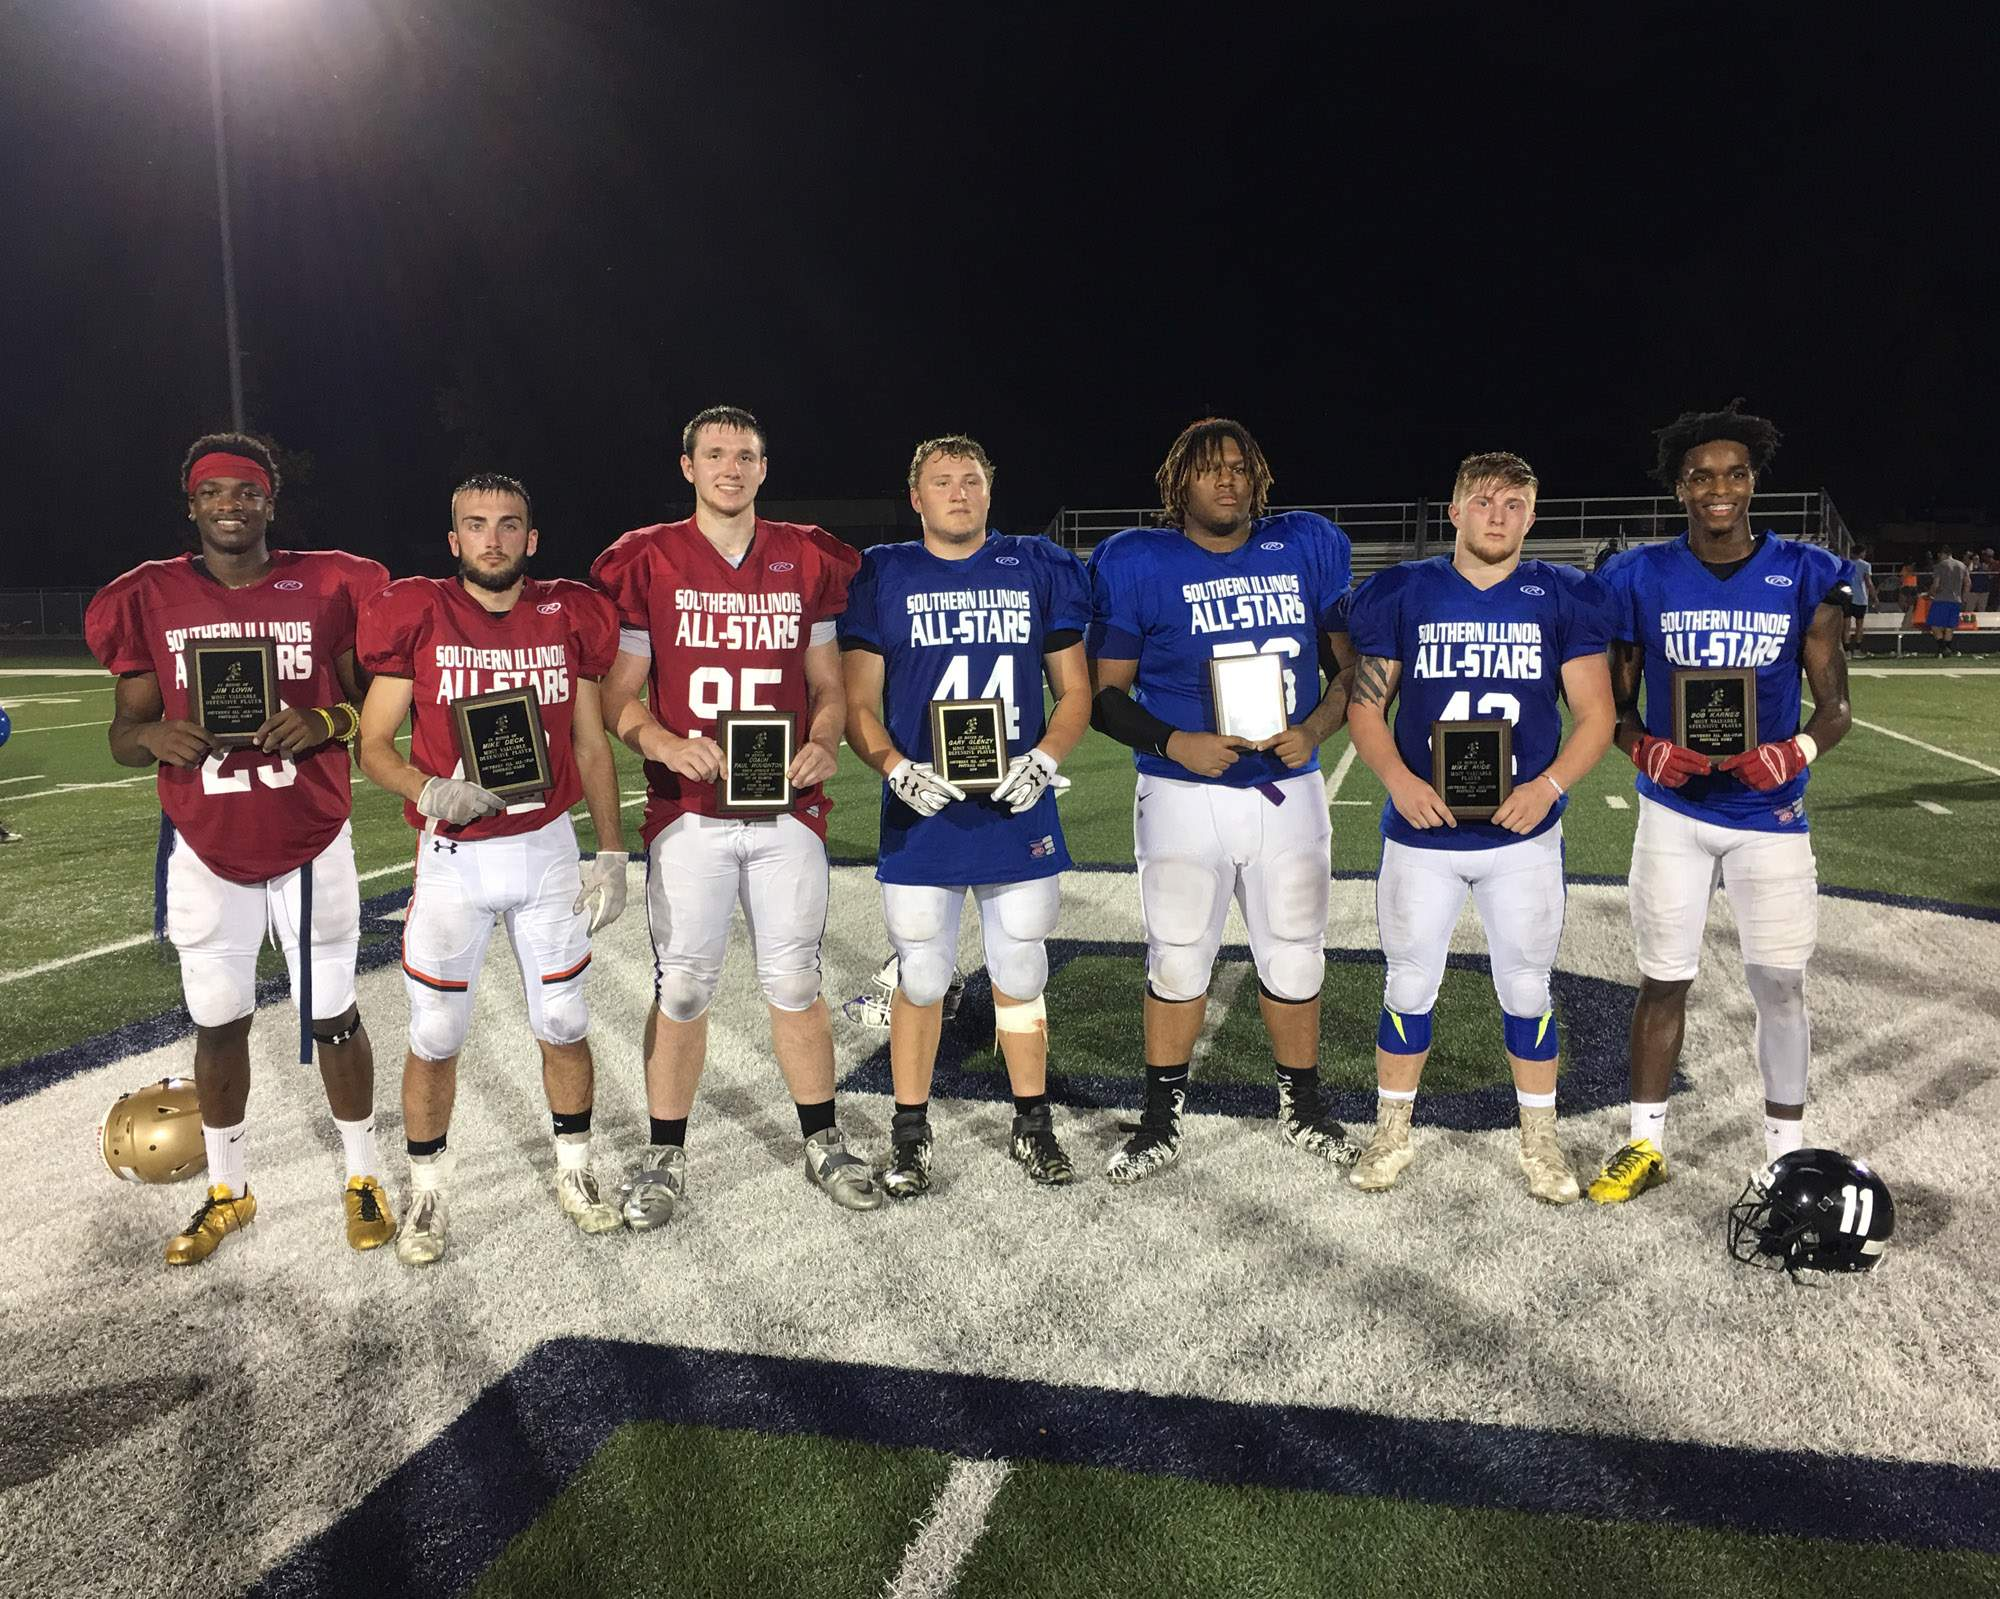 The special award winners at the Southern Illinois All-Star Football Game were (from left): Marion's Jaden Lacy (Jim Lovin Award - Team Red Offensive MVP), Herrin's Kyle Matuszczak (Mike Deck Award - Team Red Defensive MVP), Eldorado's Braden Attebury (Paul Houghton Sportsmanship Award - Team Red), Harrisburg's Jordan Bartok (Gary Glenzy Award - Team Blue Defensive MVP), Harrisburg's Rajah Peacock (Paul Houghton Sportsmanship Award - Team Blue), Anna-Jonesboro's Jayce Turner (Mike Rude Award - Game MVP) and Carbondale's Jaden Bradley (Bob Karnes Award - Team Blue Offensive MVP).